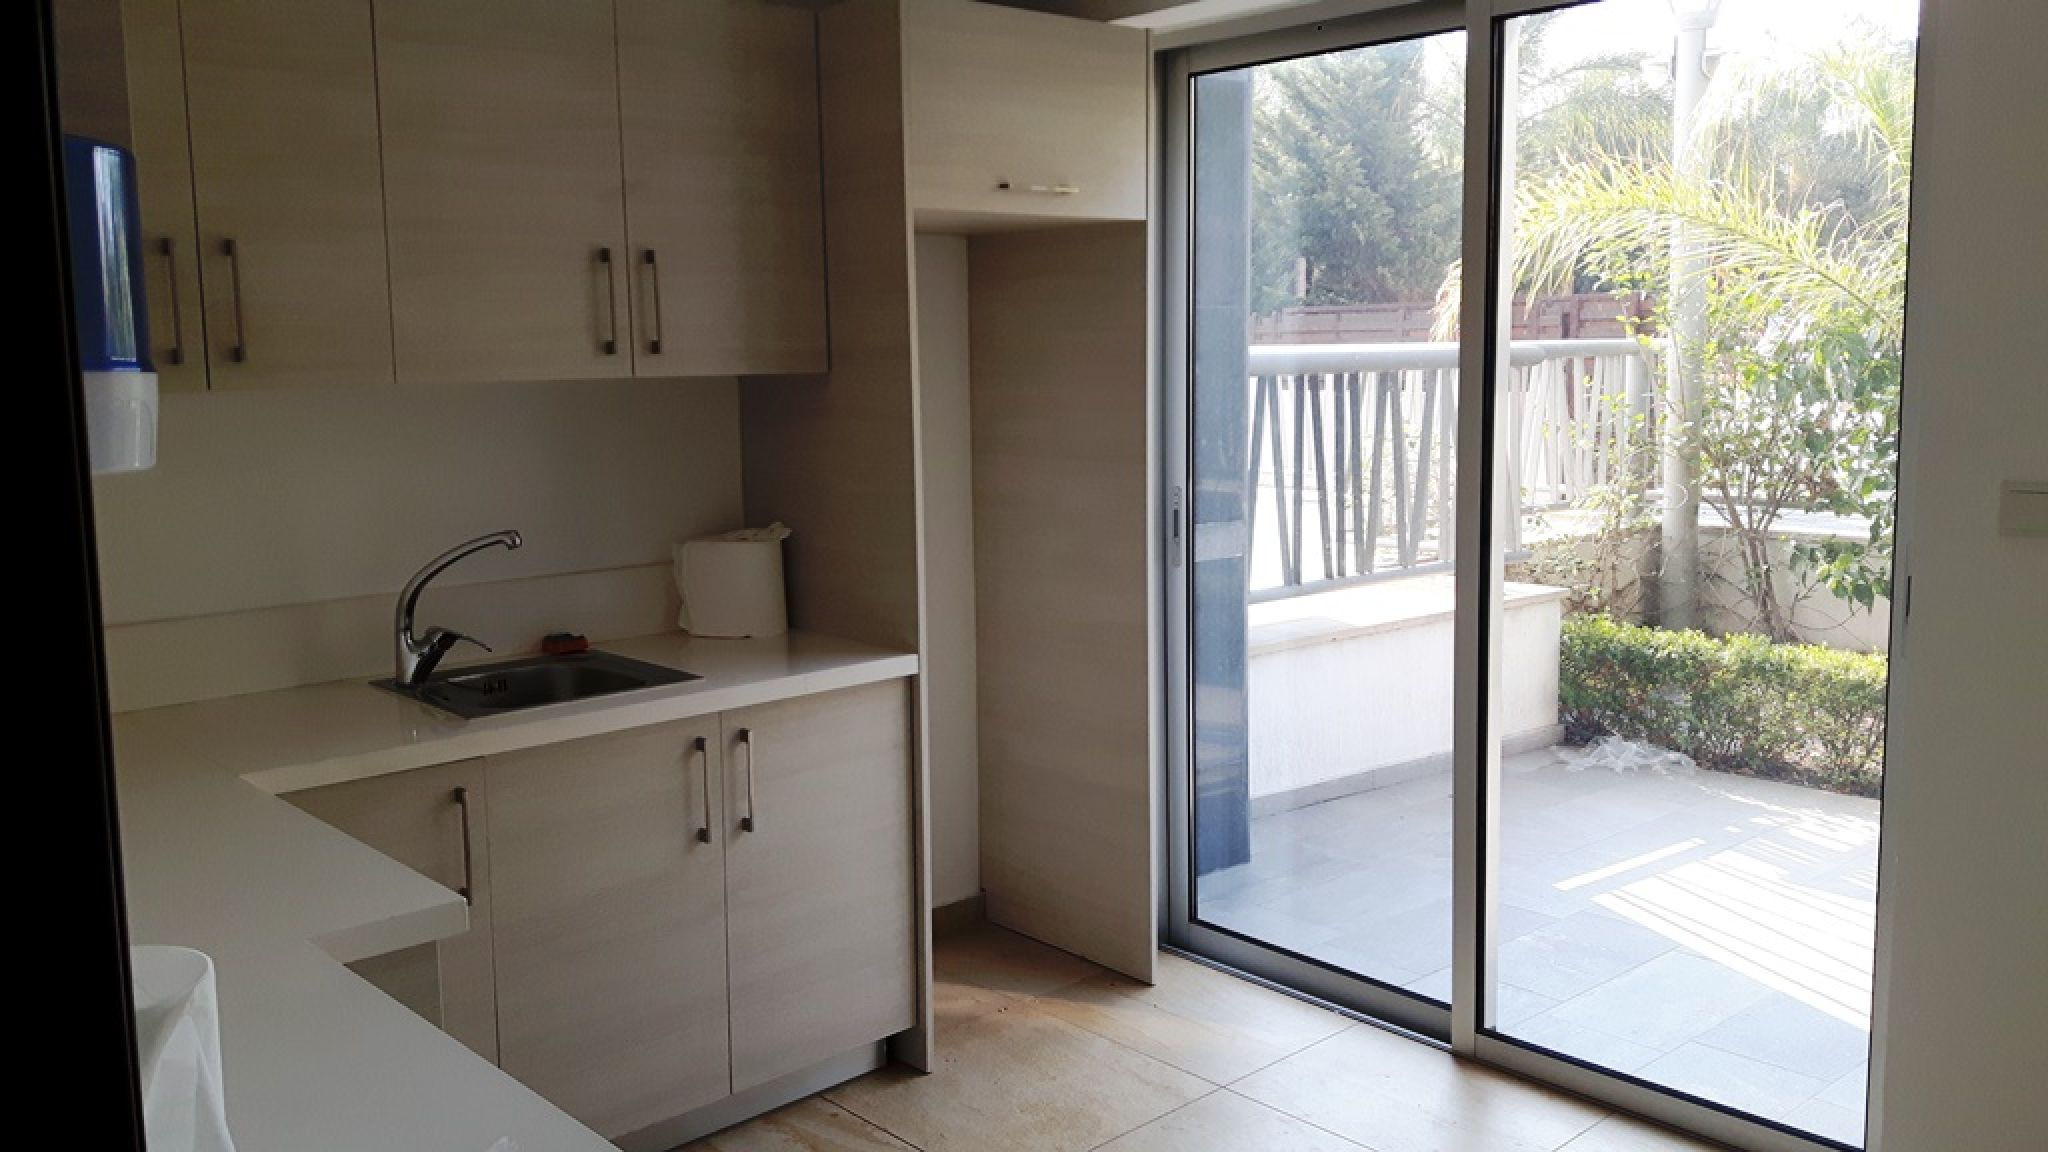 Luxury office space for rent located in potamos germasogeias with